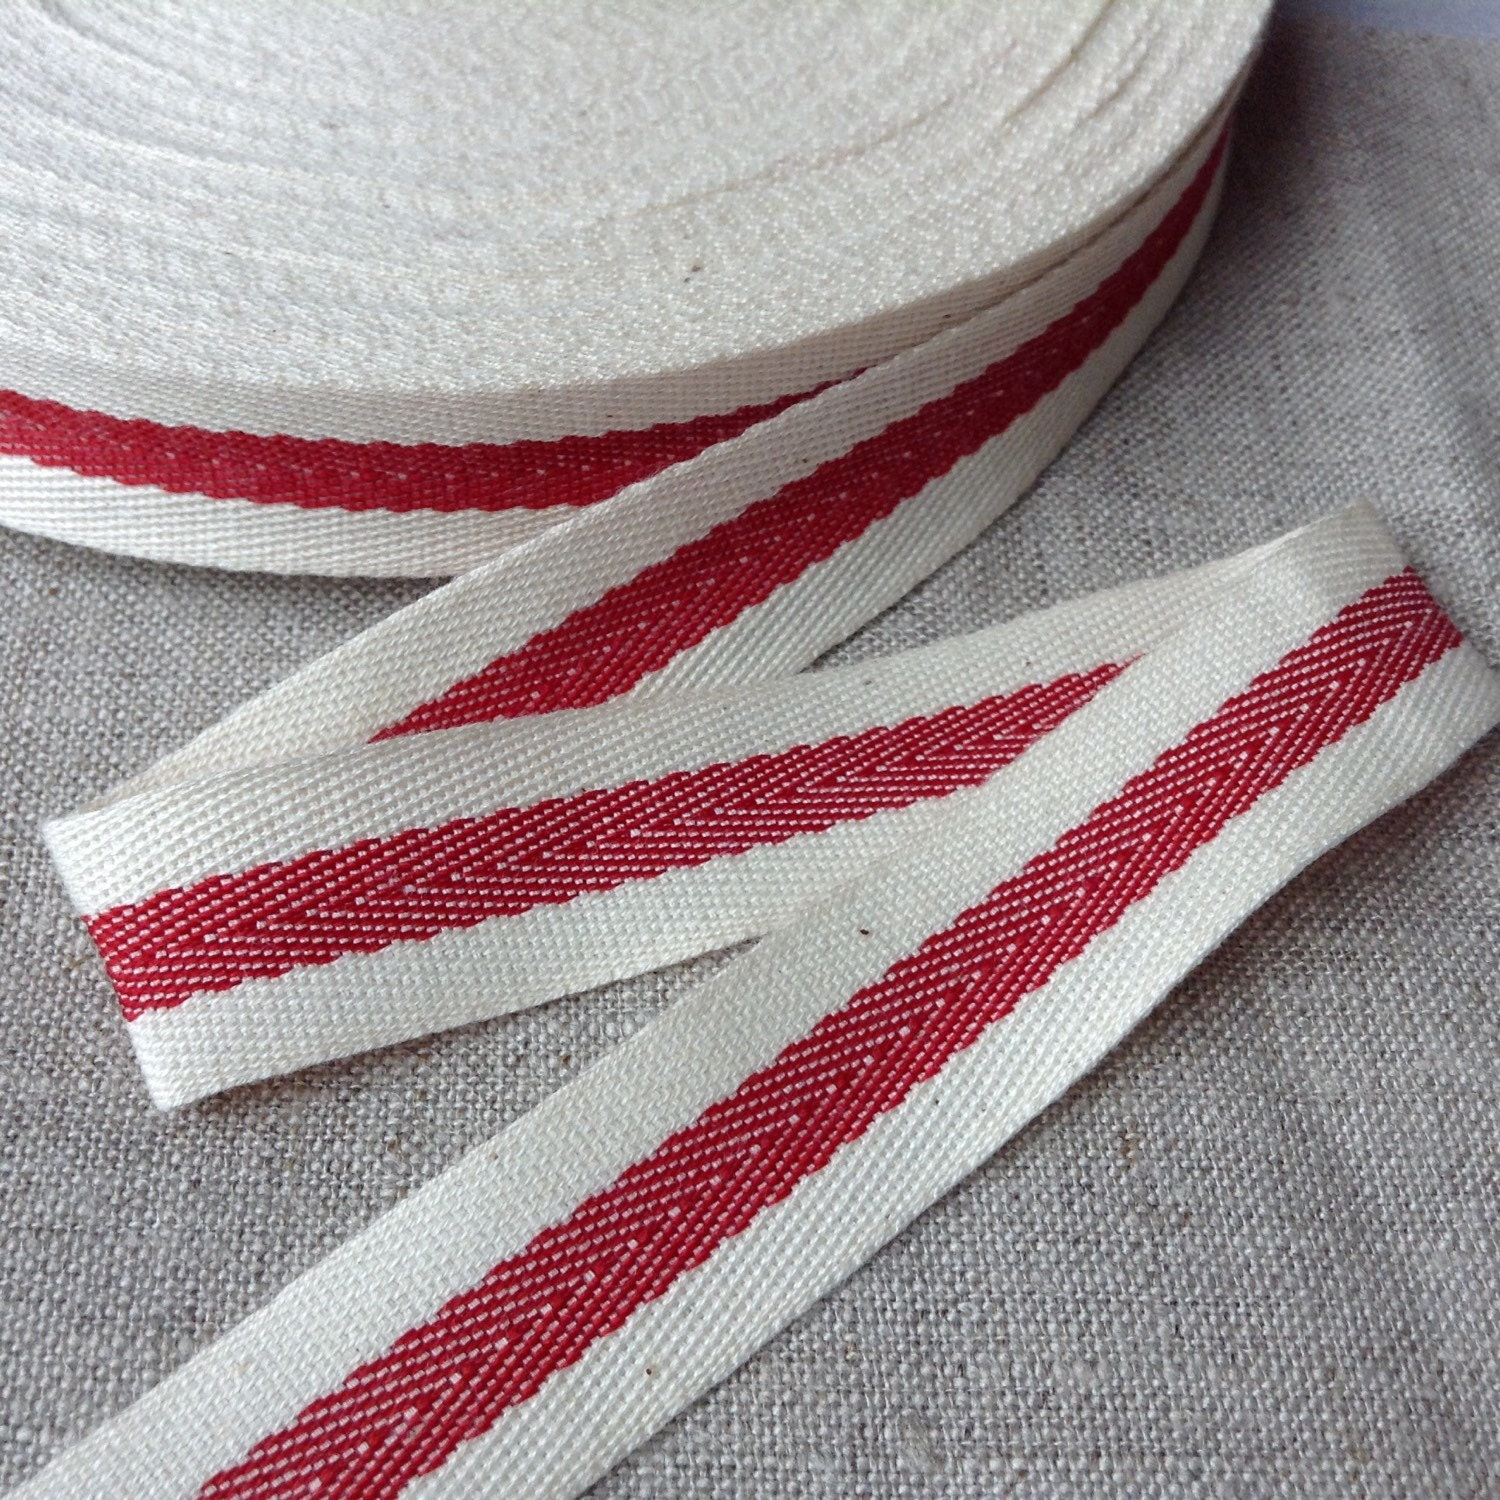 3/4 Twill tape ribbon with a woven centre red stripe 50 | Etsy